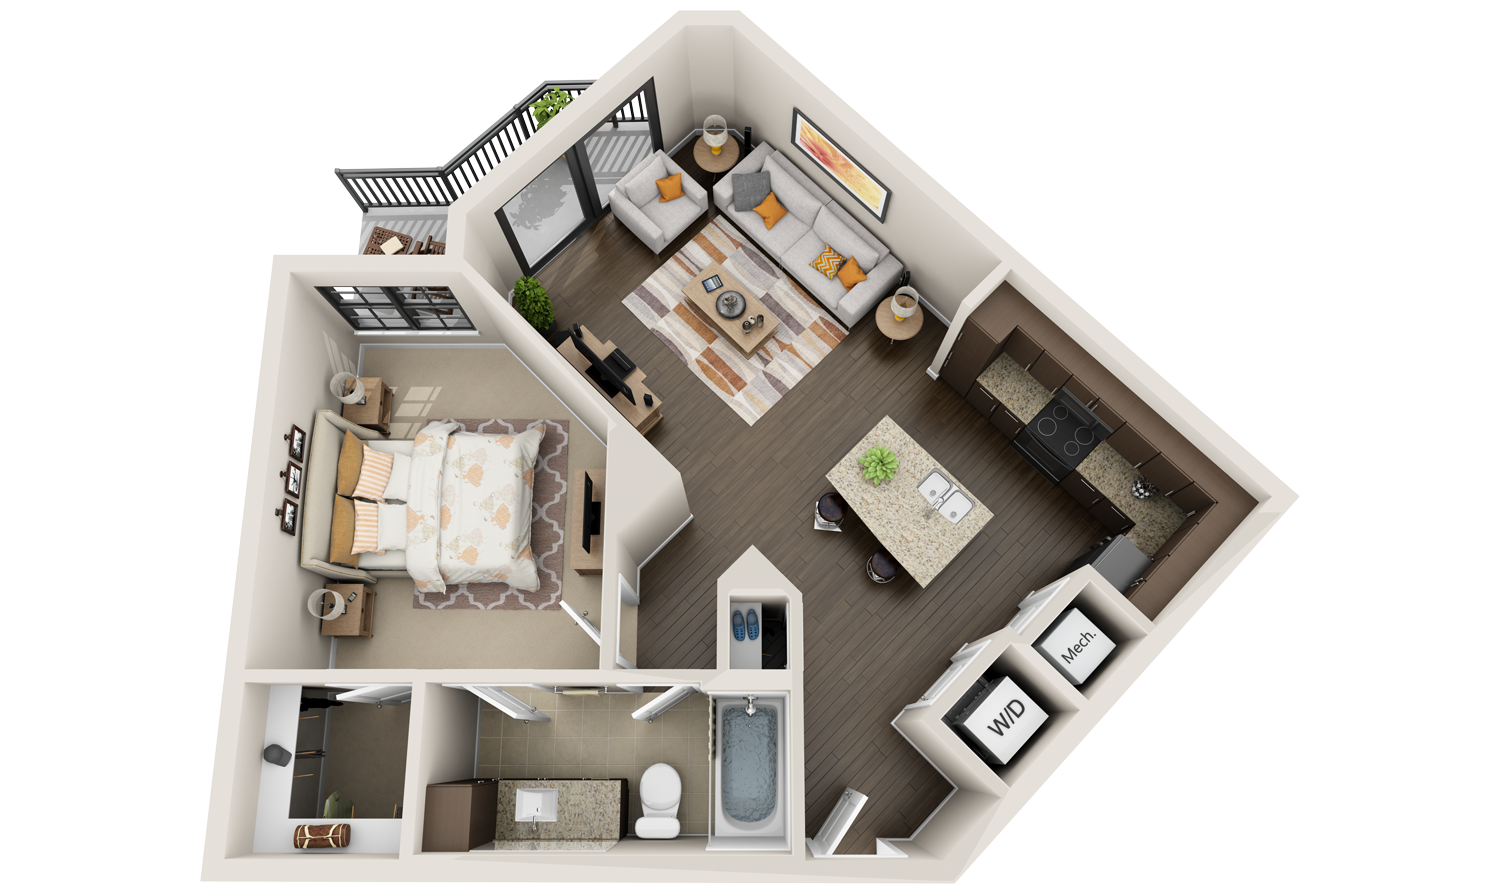 Charmant 3d Floor Plan Image 1